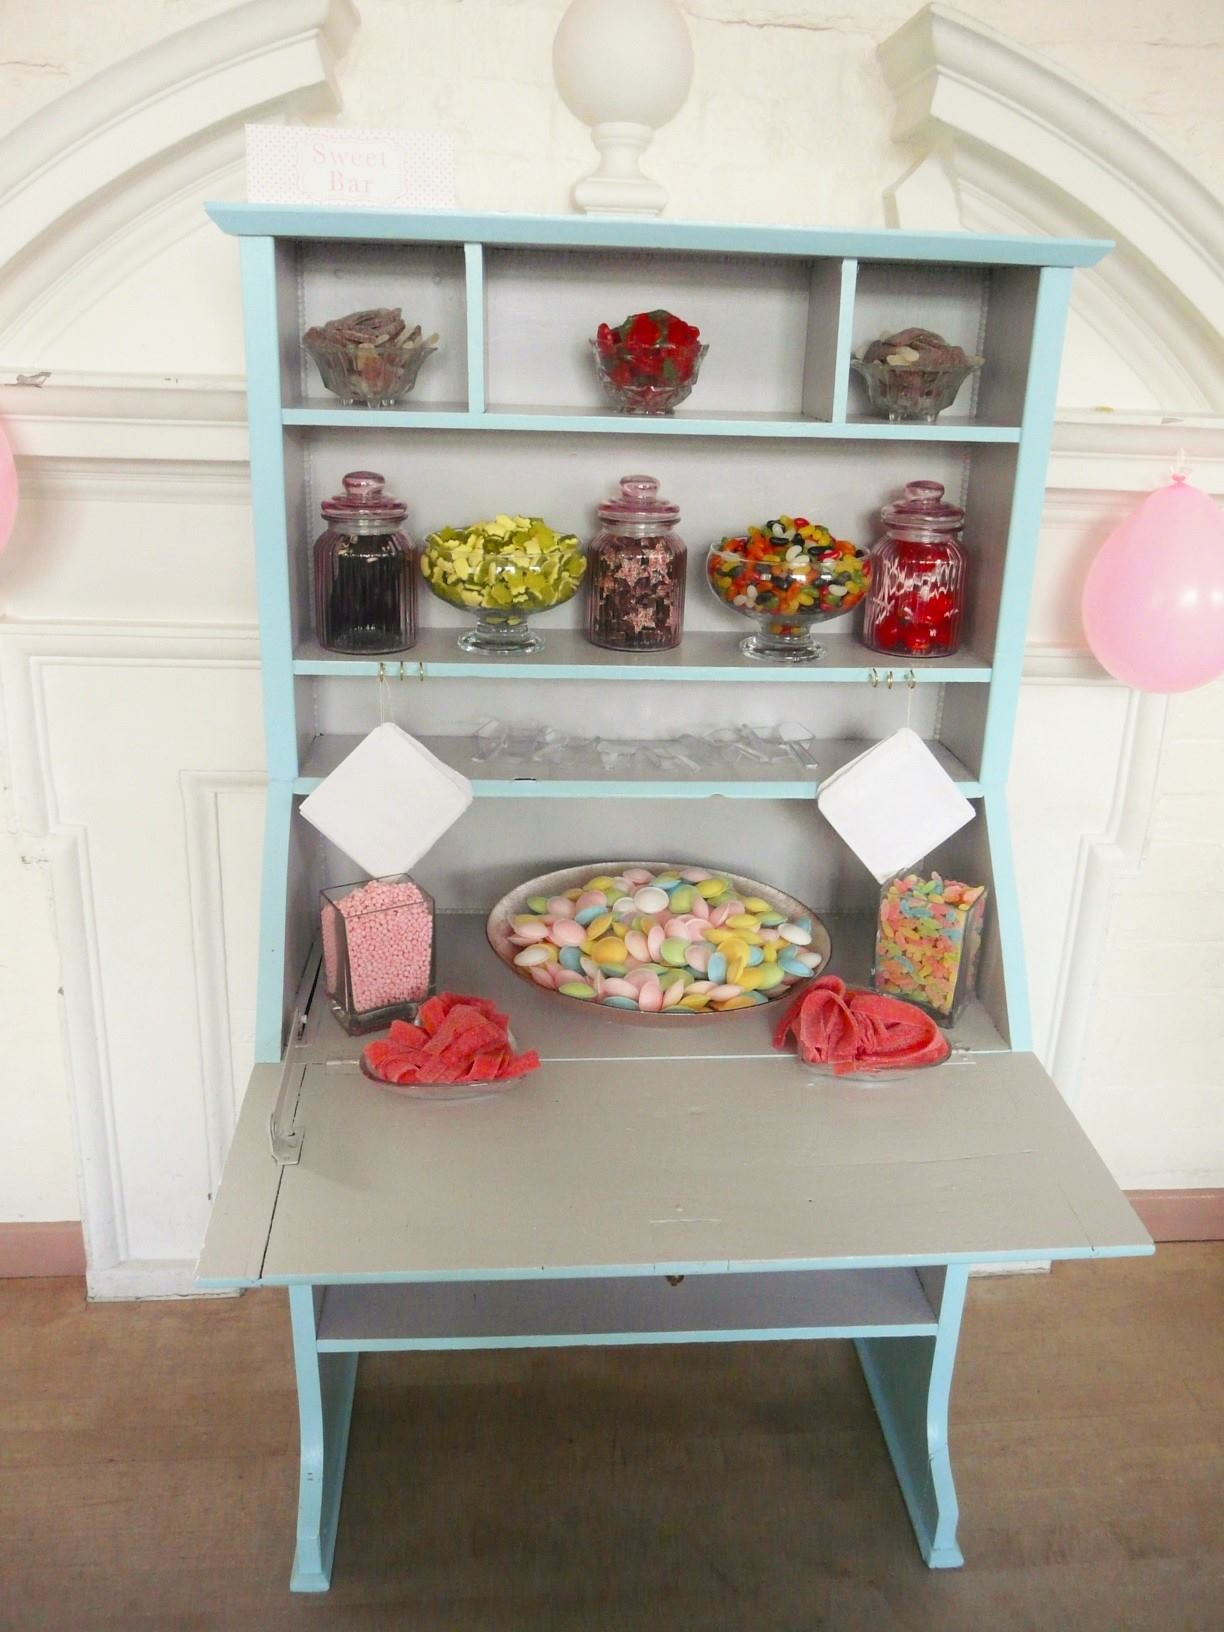 Our sweet table out & about